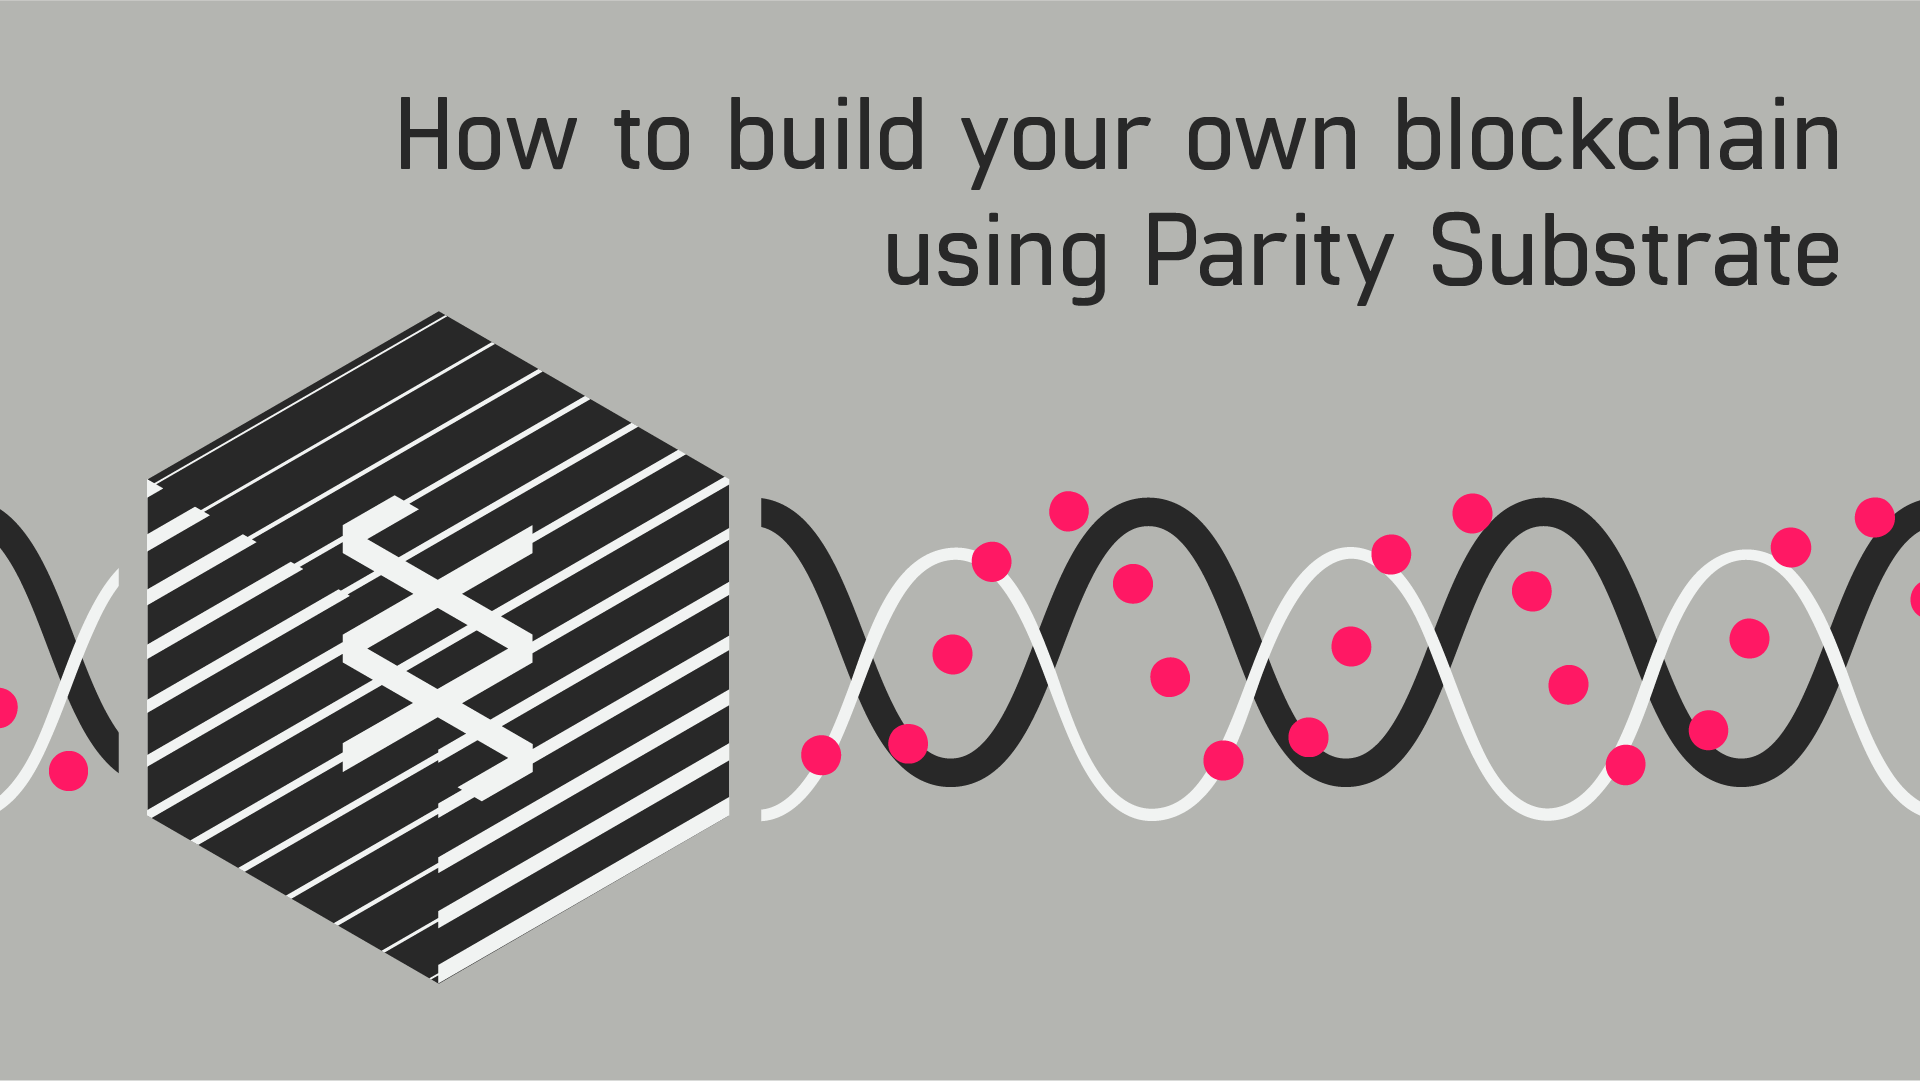 How To Build Your Own Blockchain Using Parity Substrate | by Gautam Dhameja  | HackerNoon.com | Medium